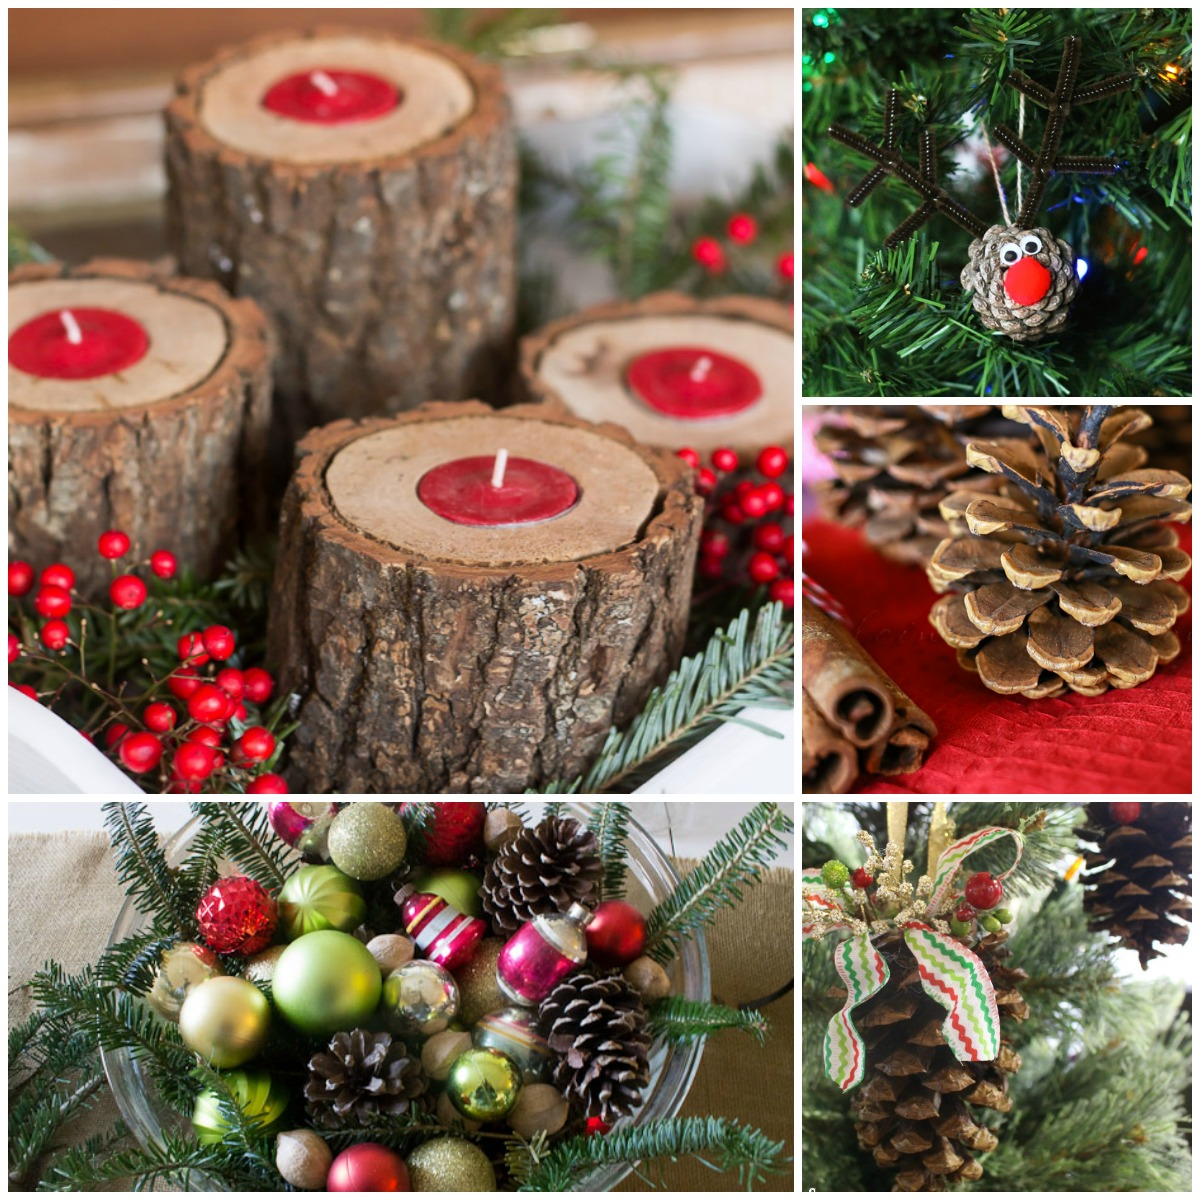 Christmas Decorations Holiday Decorations Decor: 9 DIY Home-Made Christmas Ornaments To Decorate Your Tree